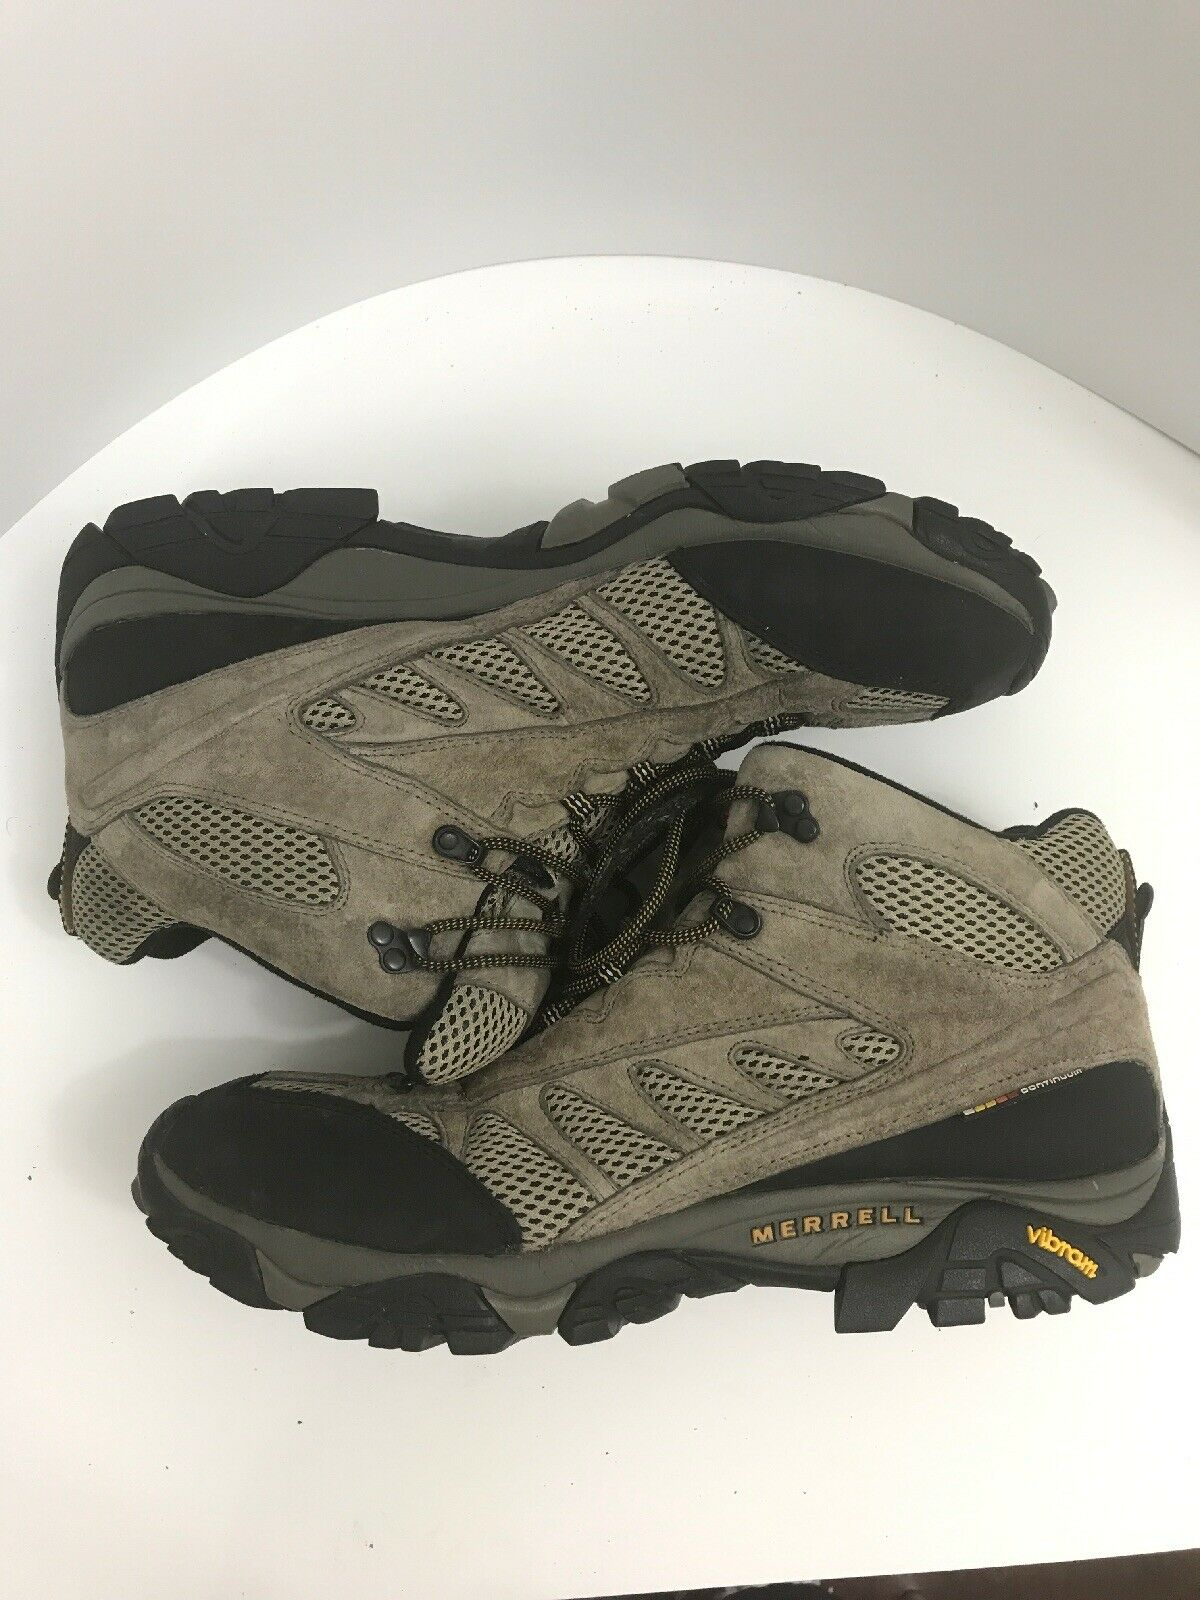 Merrell Continuum Vibram Mens 15 Hiking Trail  Lace Up Boot  sale